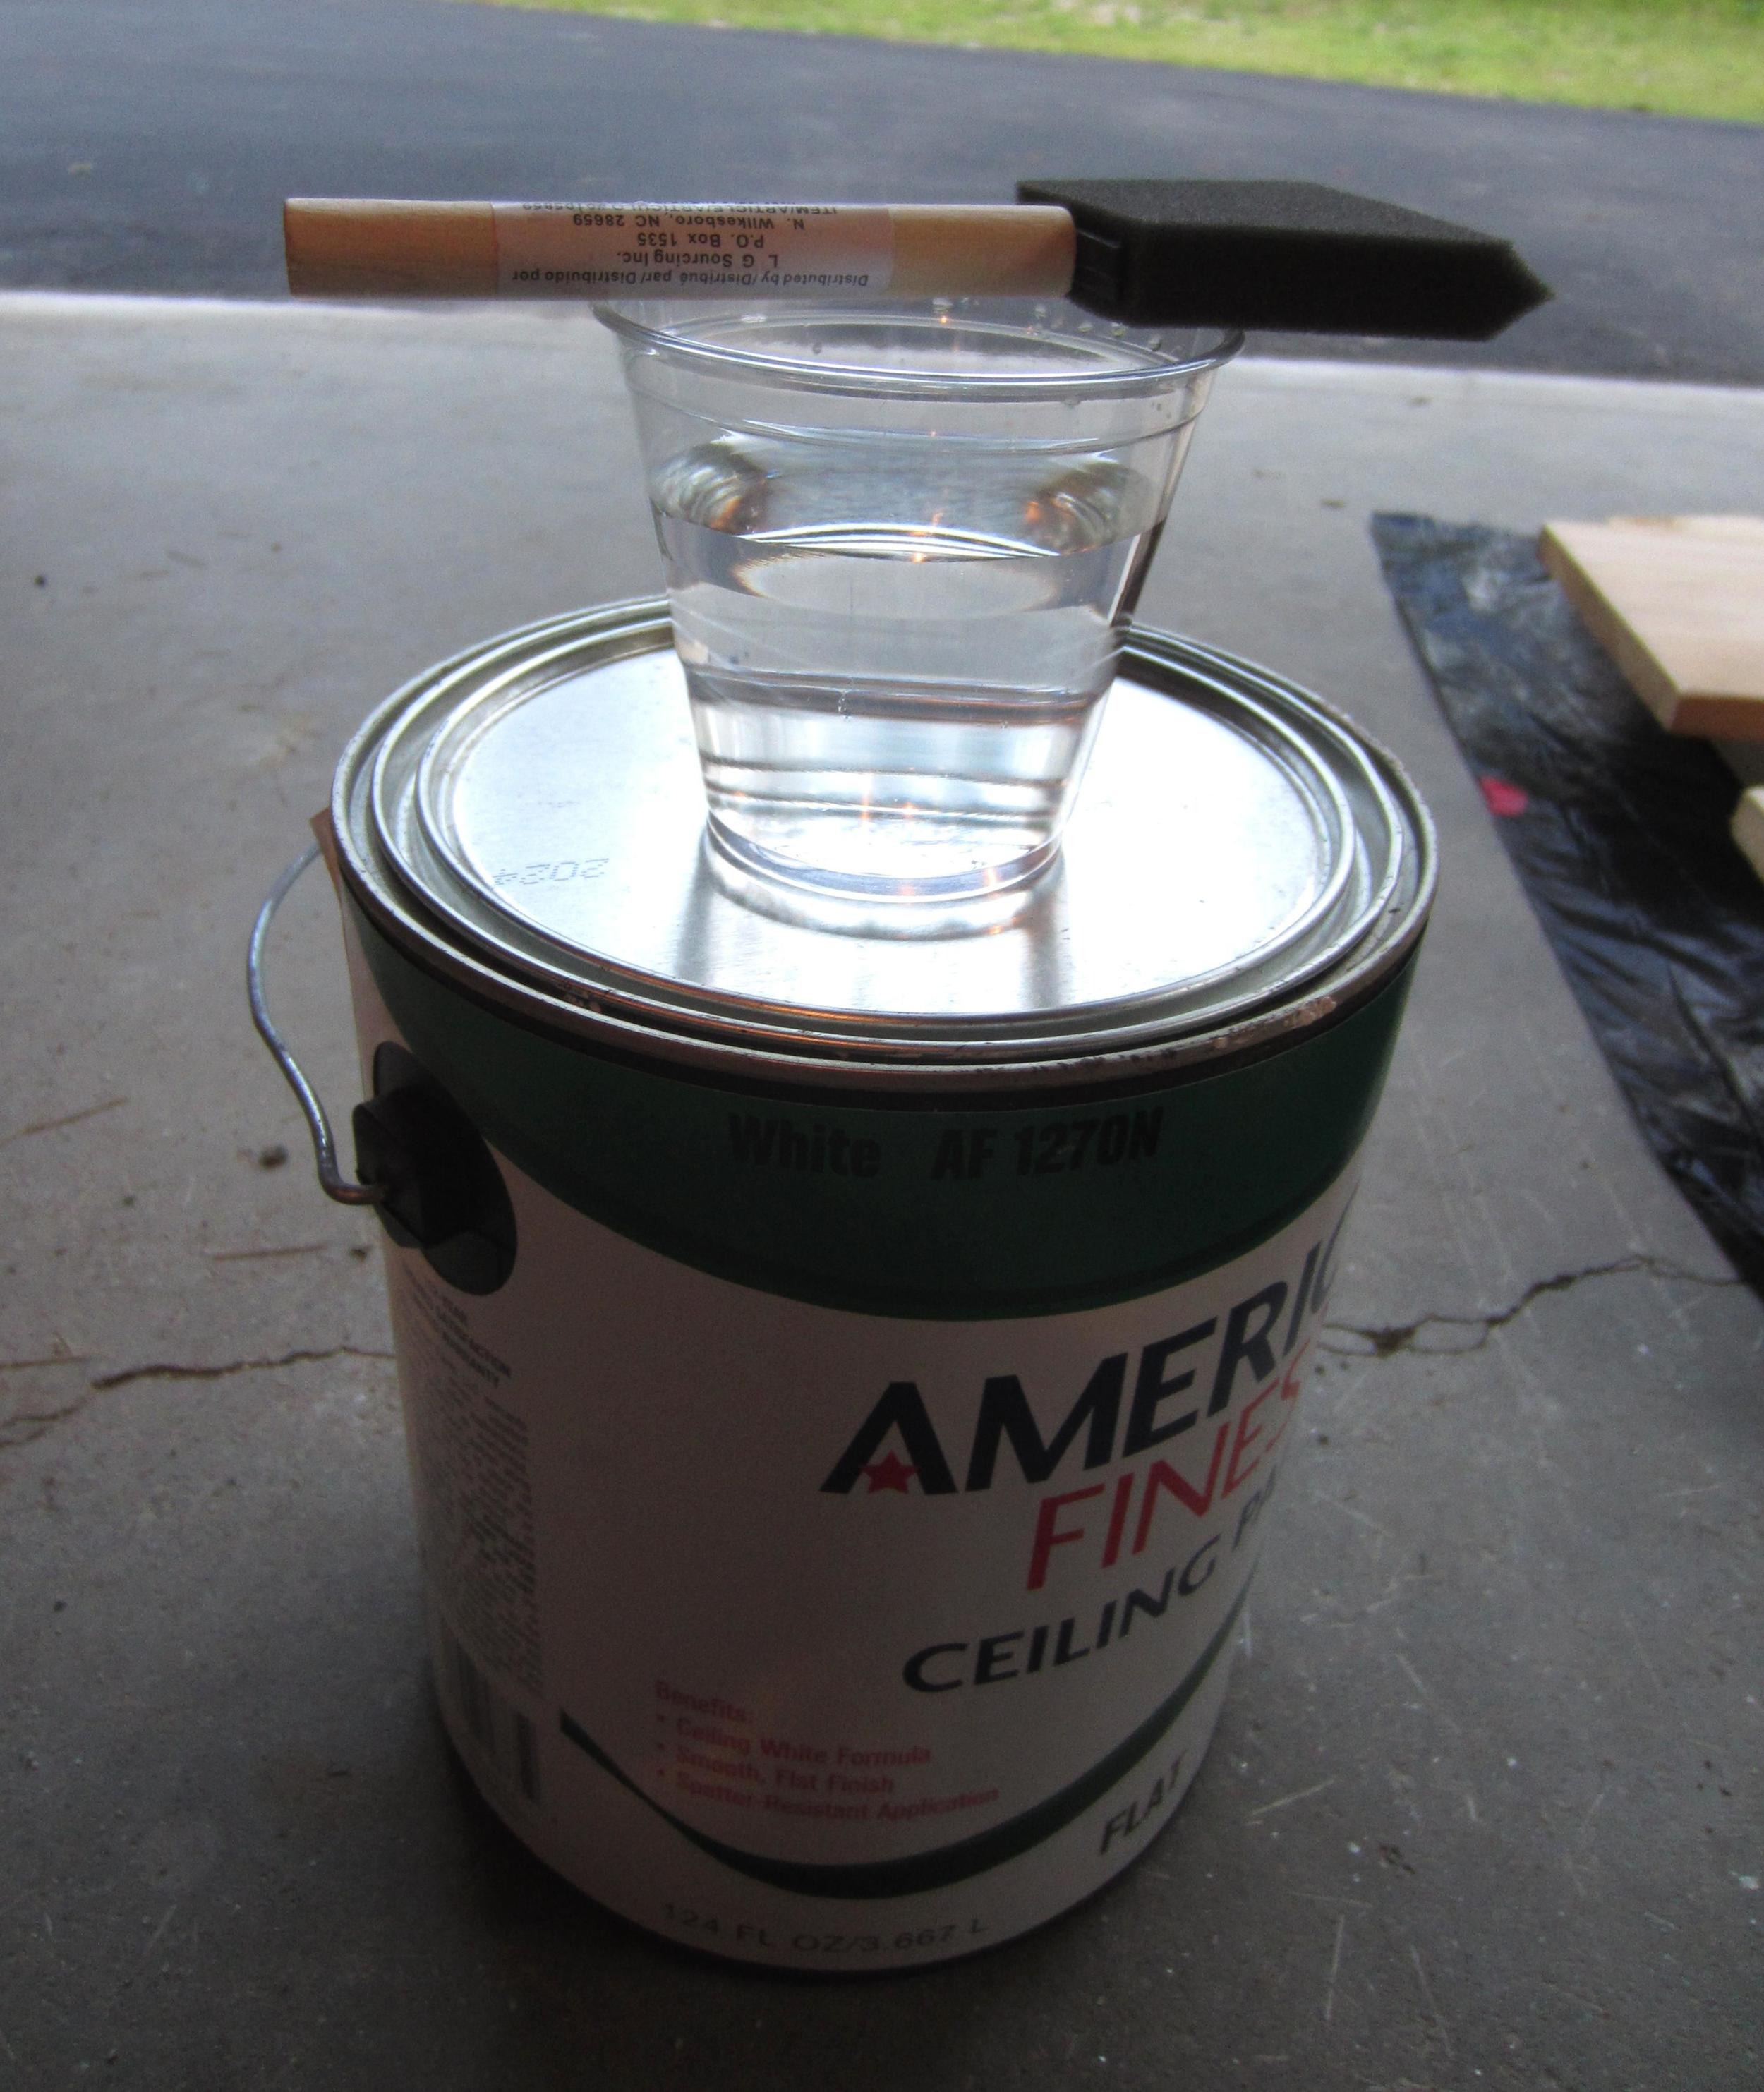 Leftover ceiling paint works great to make your whitewash mixture.